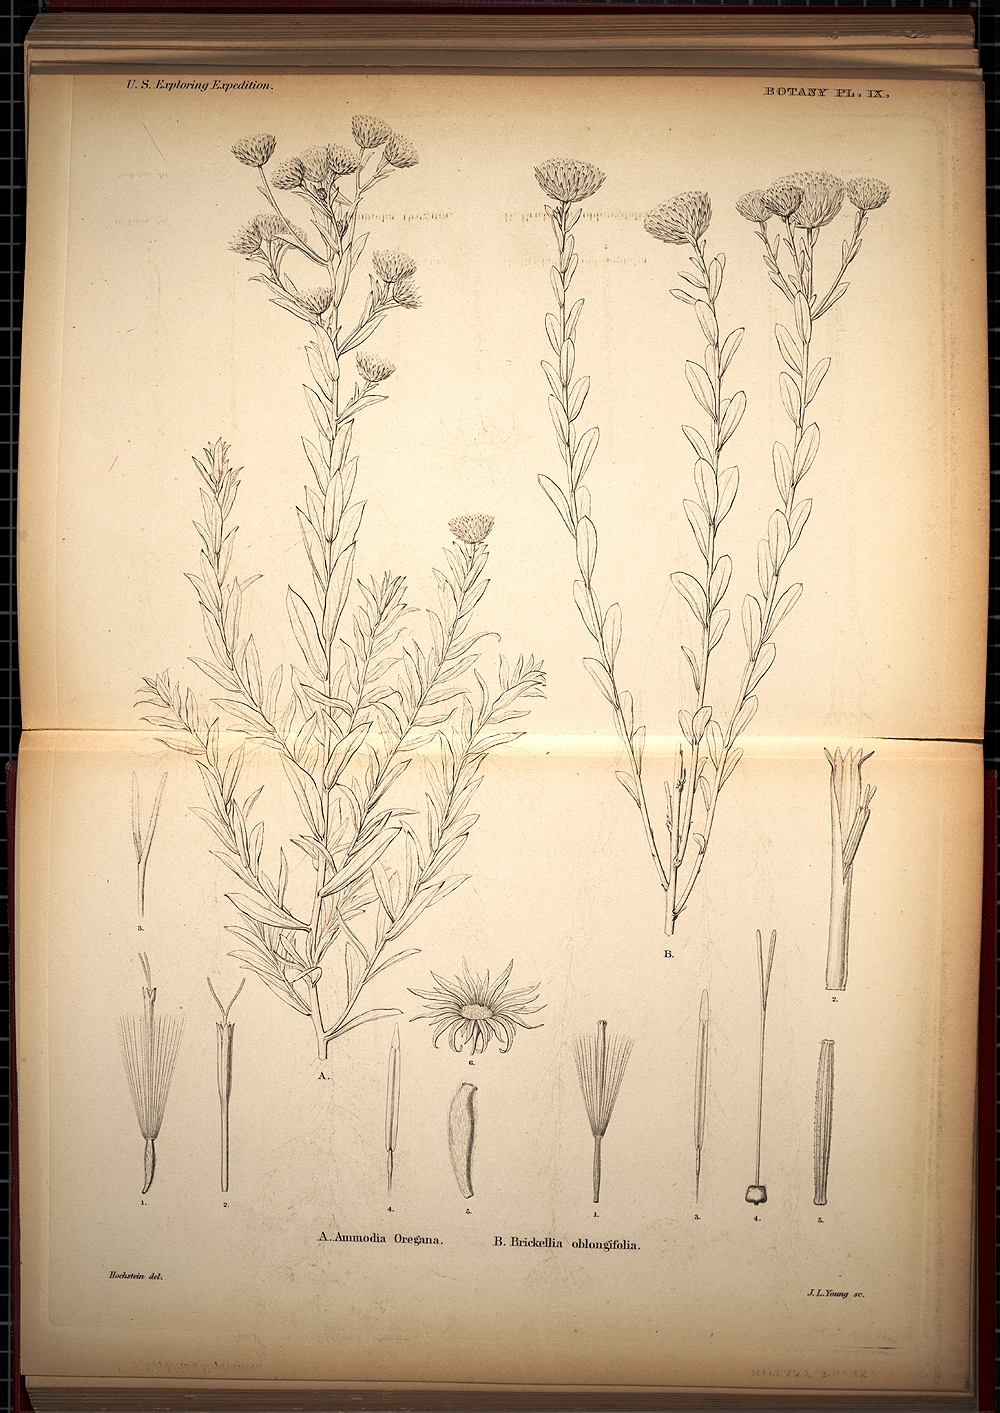 Botany, Plate IX,  Image number:SIL19-28-041